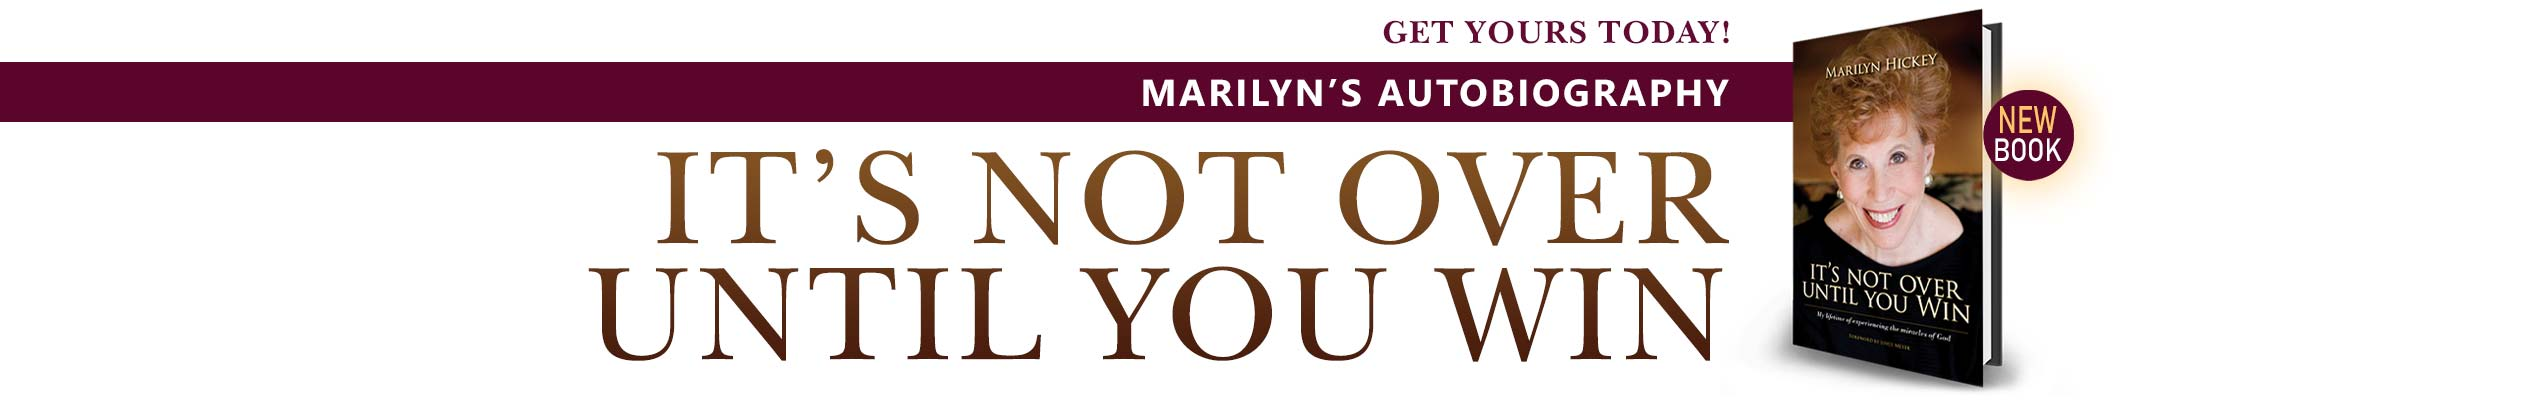 Marilyn's Autobiography Is Available!